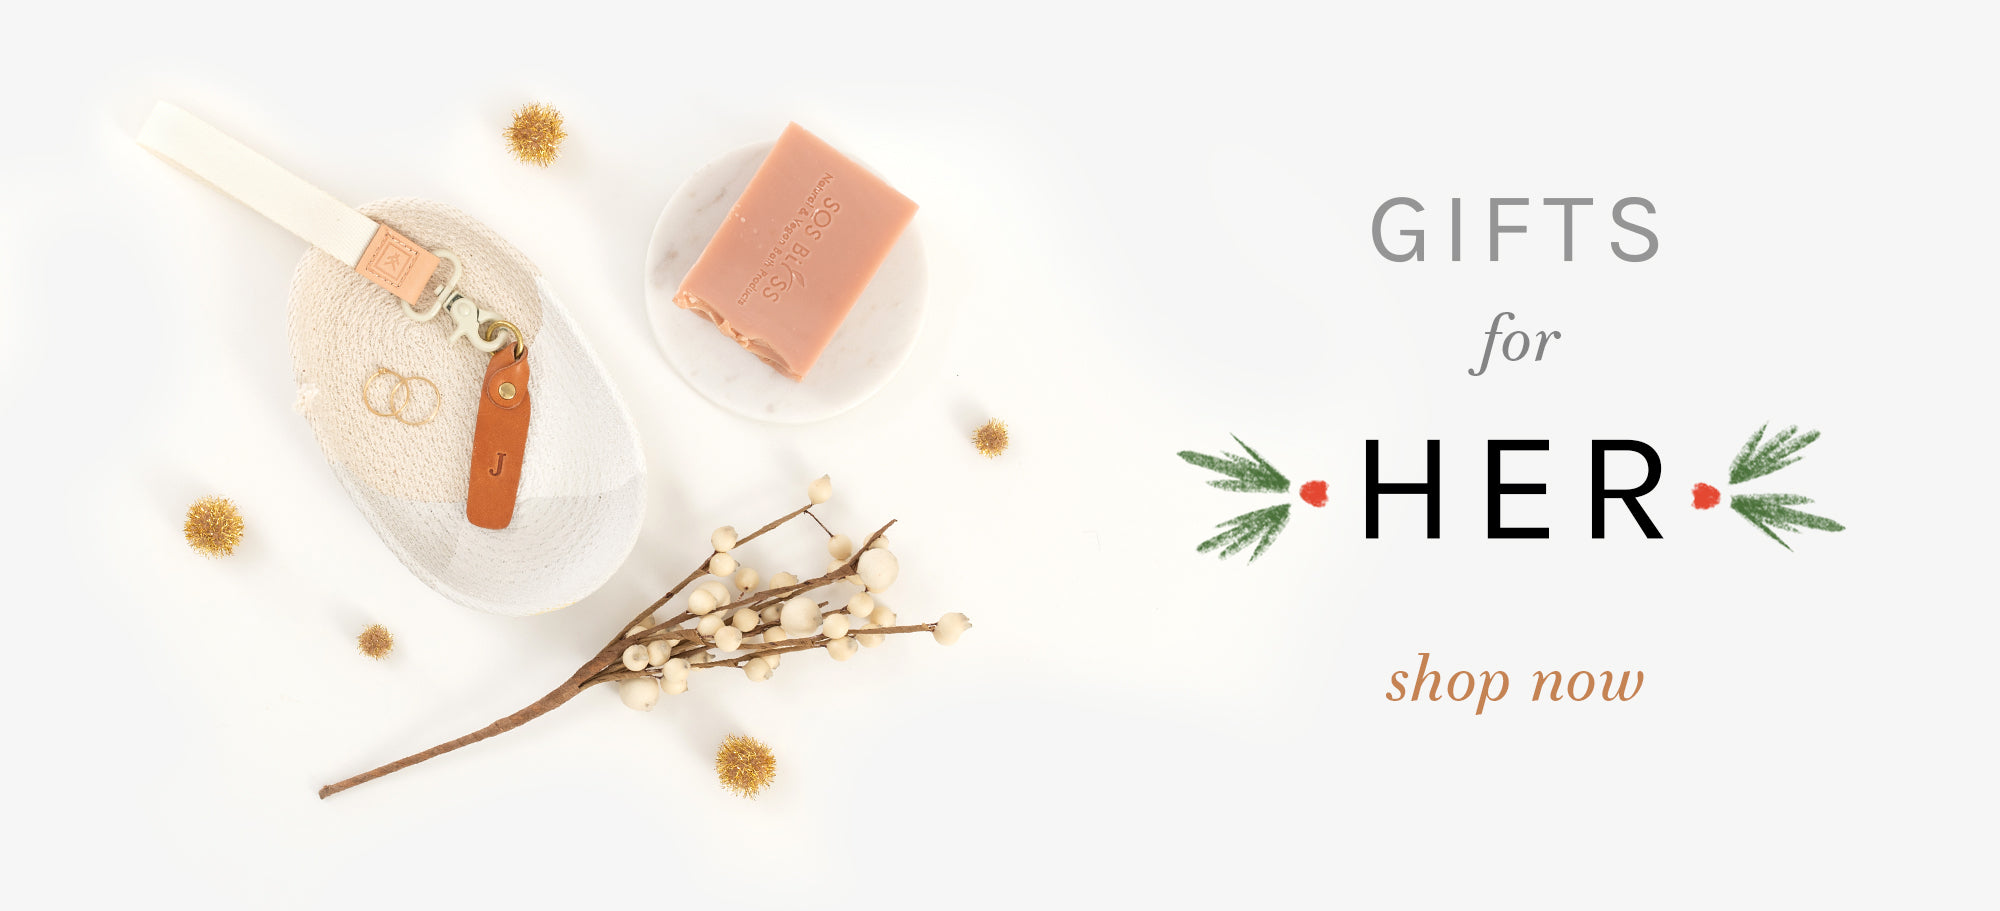 Gift Guide 2020: For Her